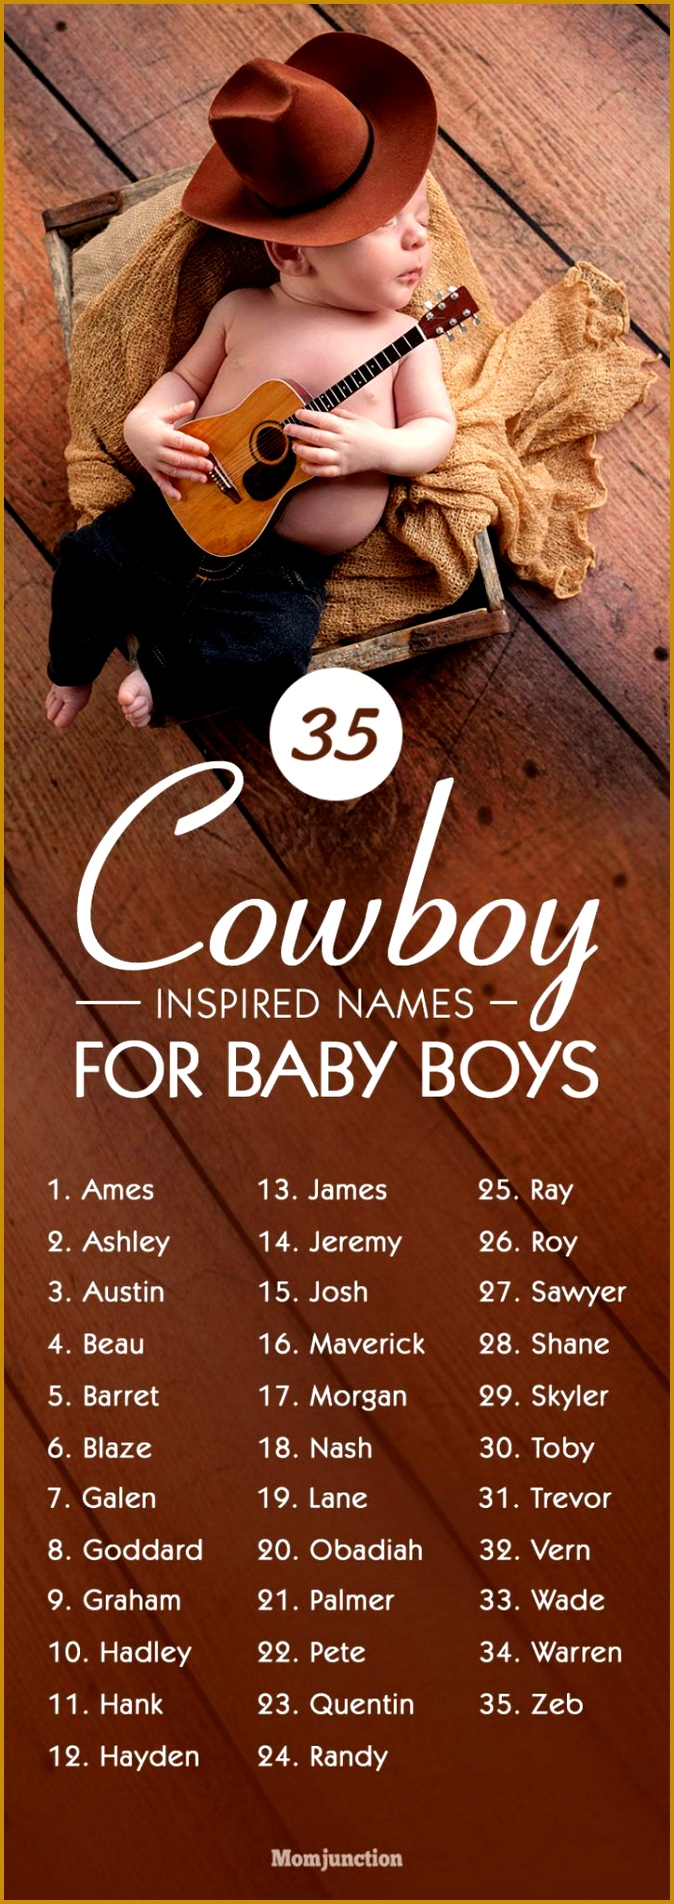 100 Ideas Cool and Unusual Names for Baby Boys and Girls 1904674